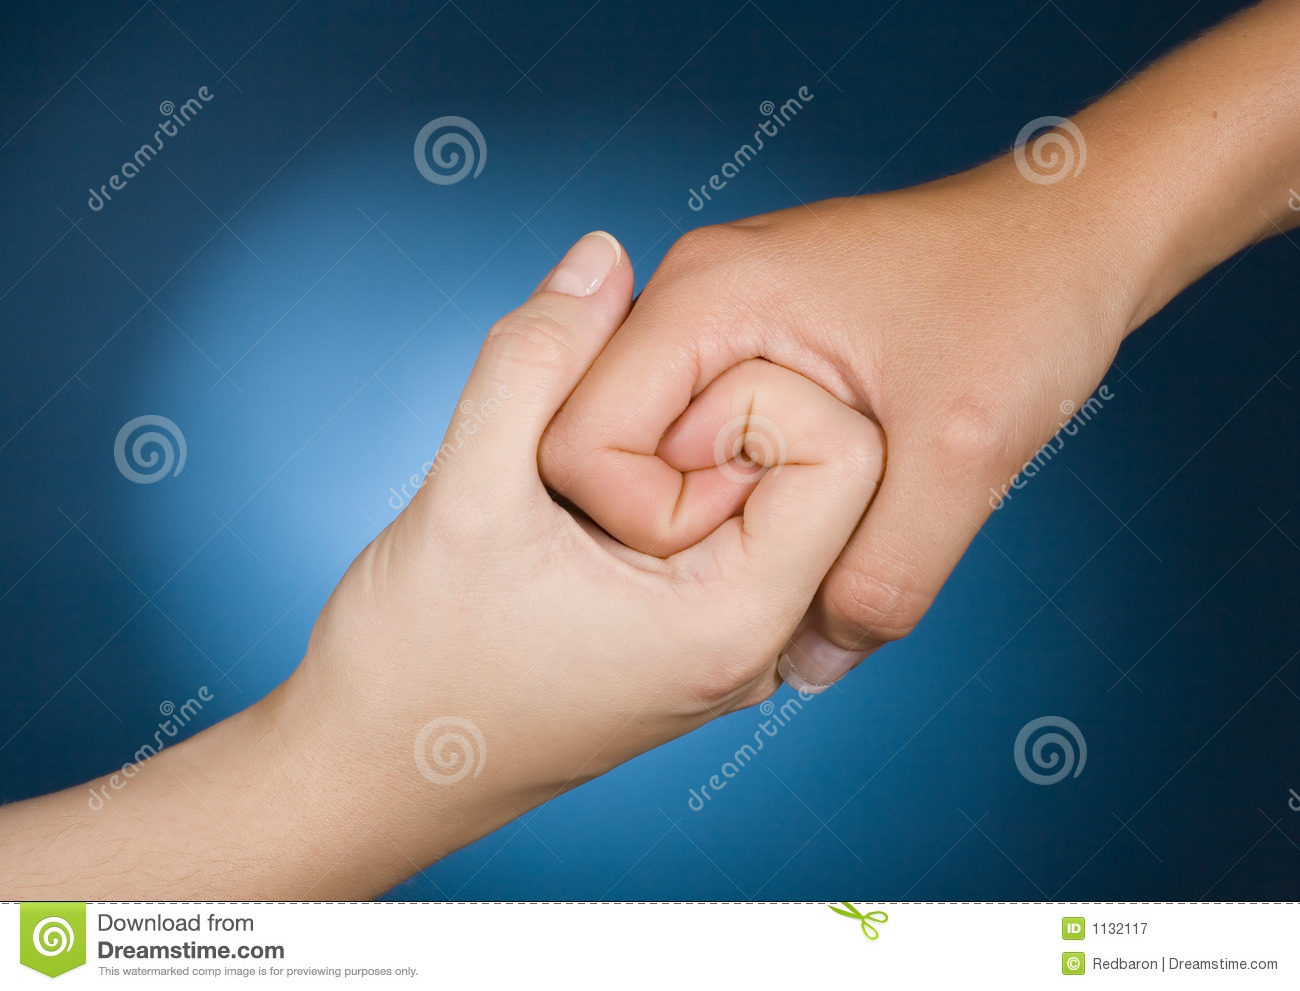 Hands Show Sympathy Royalty Free Stock Photography - Image: 1132117